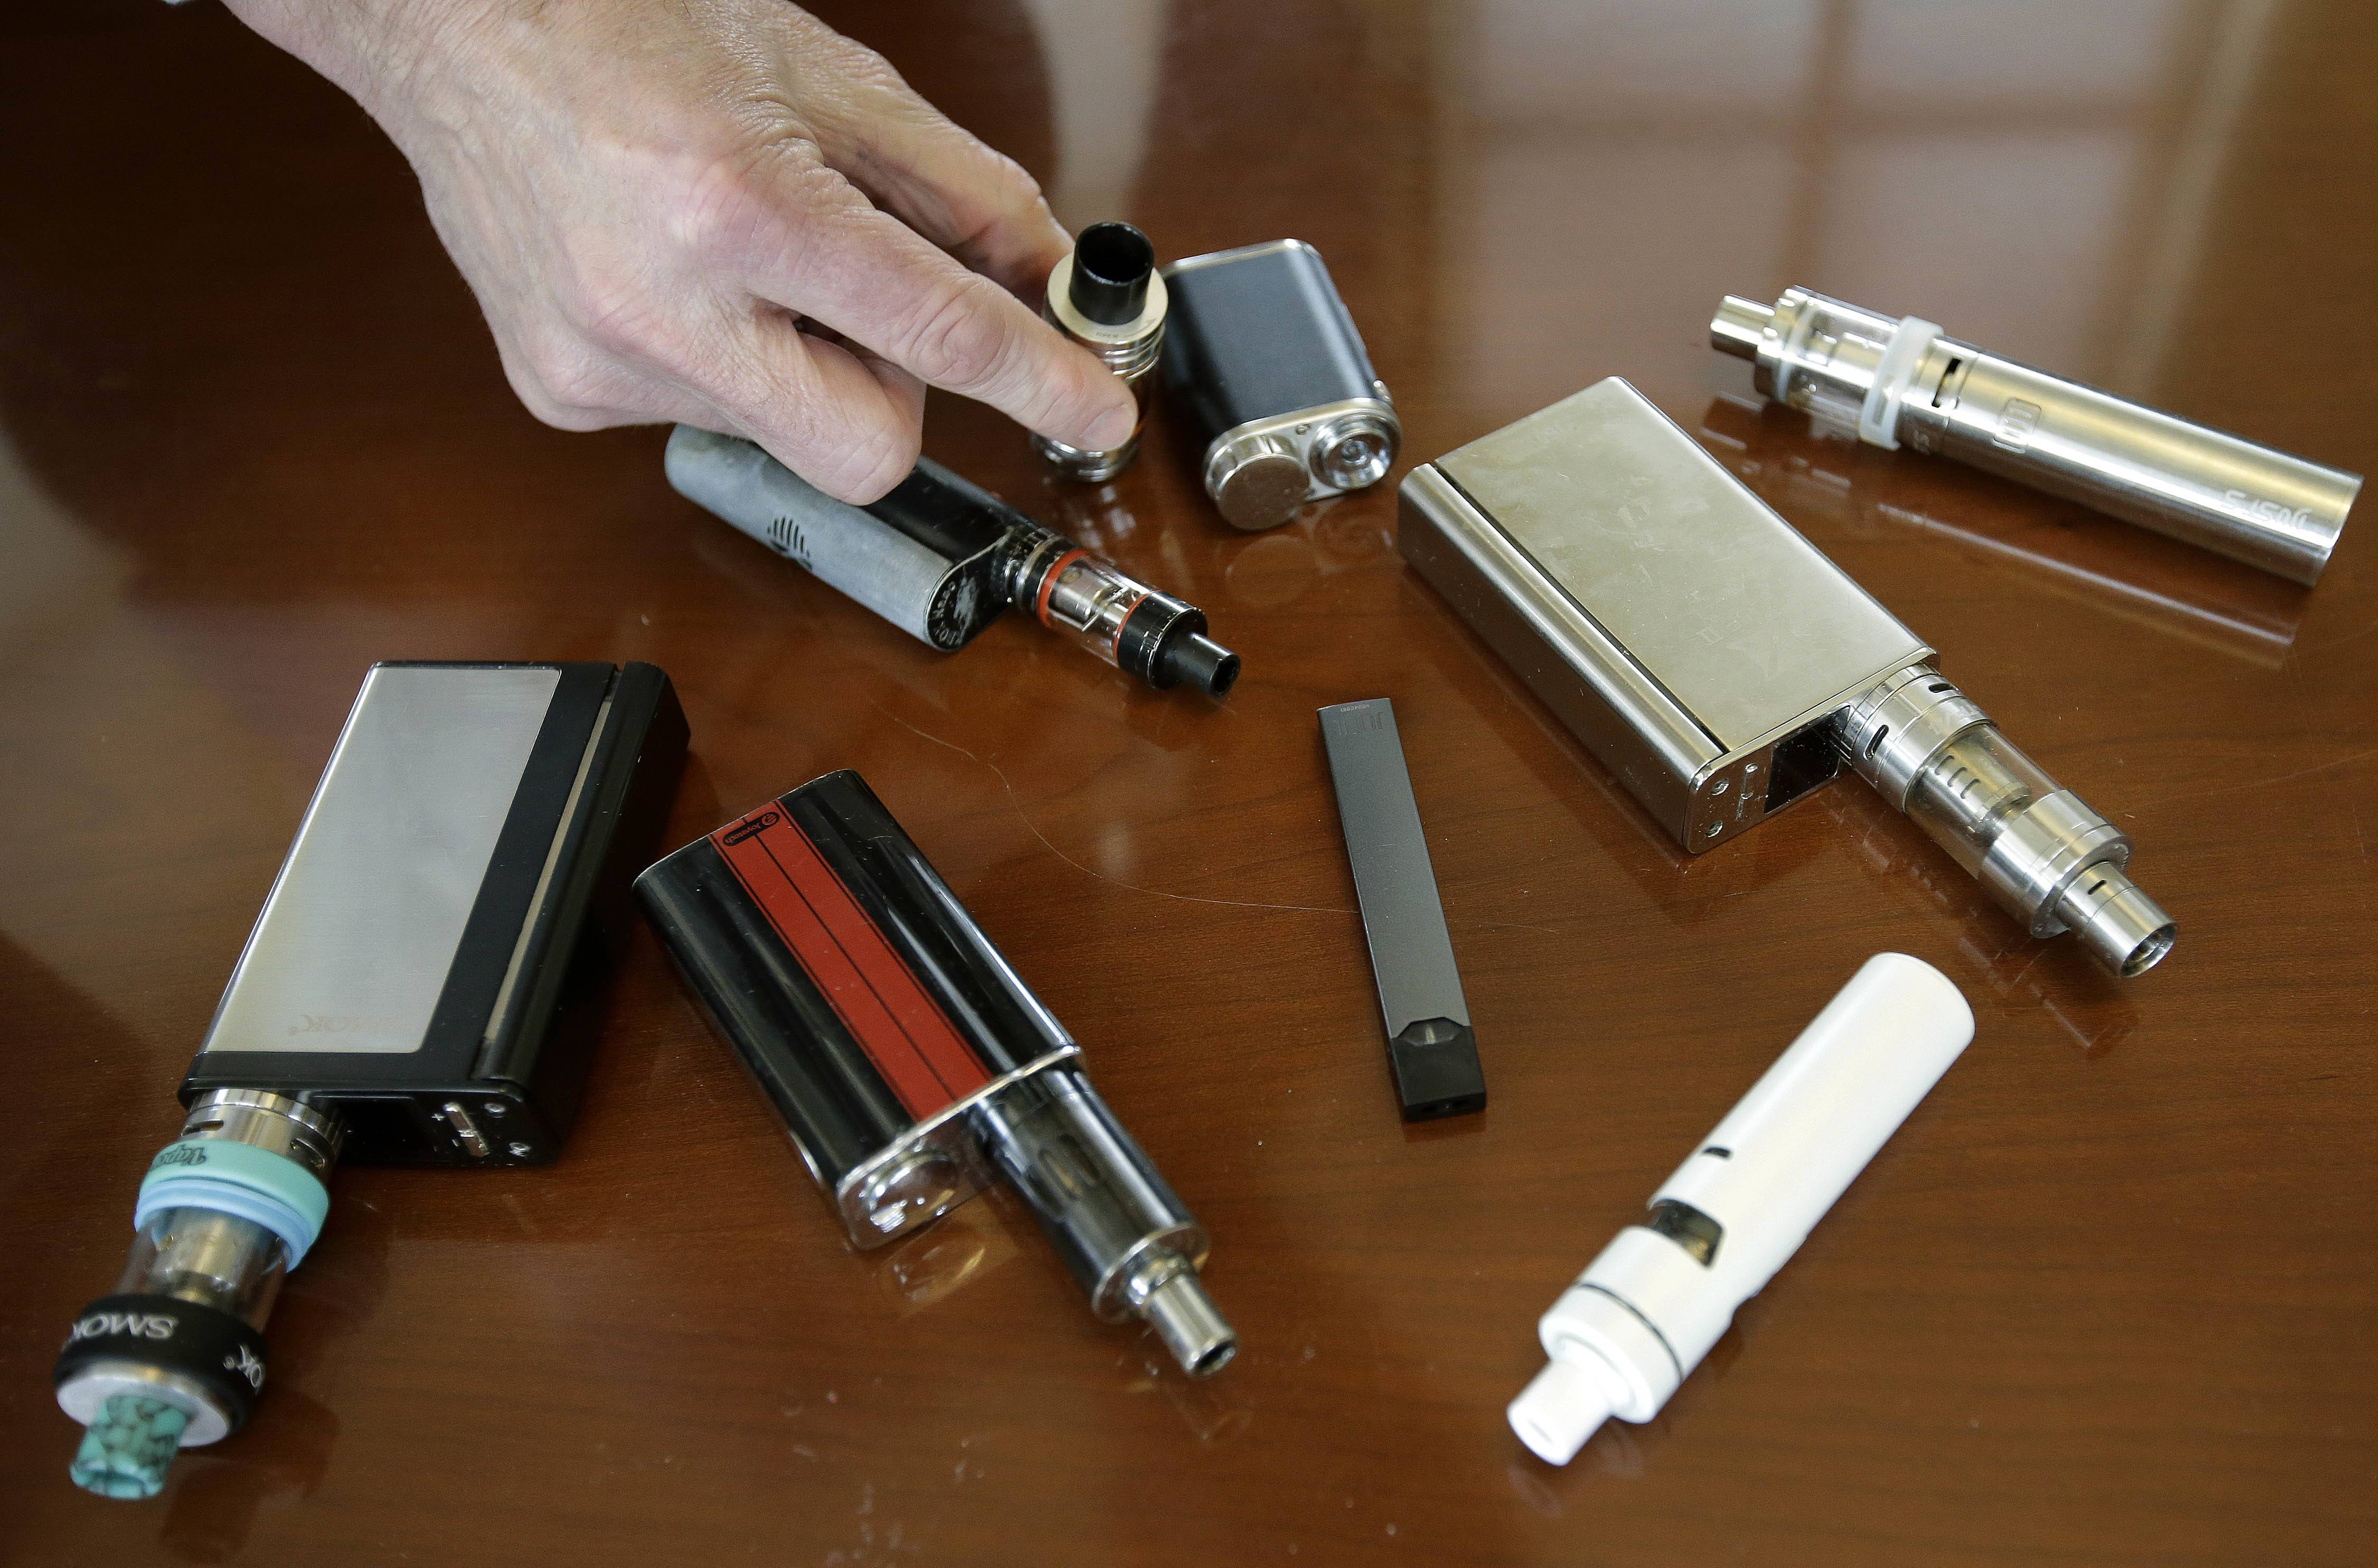 Principal Robert Keuther displays vaping devices that were confiscated from students at Marshfield High School in Massachusetts.